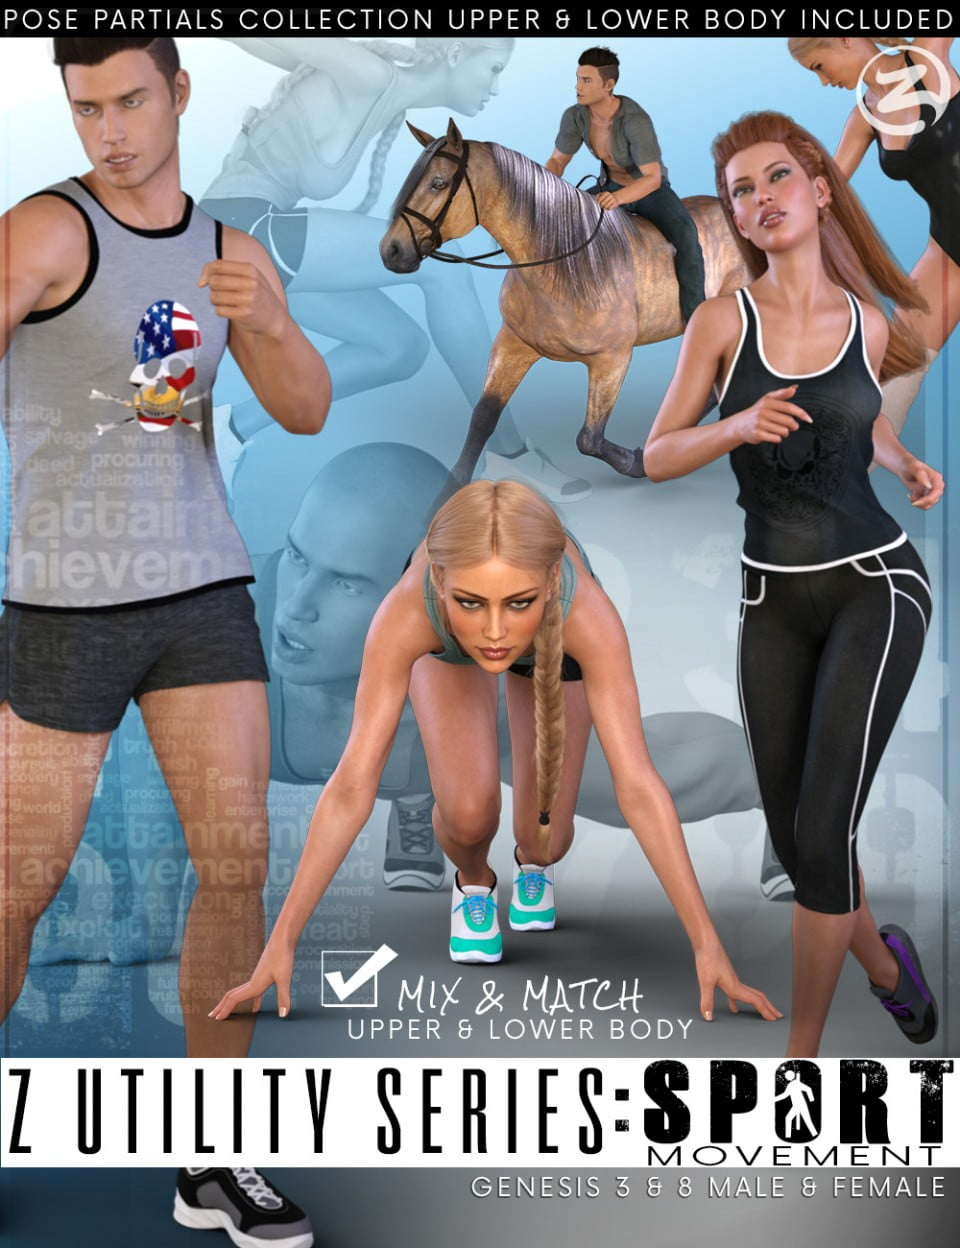 Z Utility Series Sport : Movement – Poses and Partials for Genesis 3 and 8